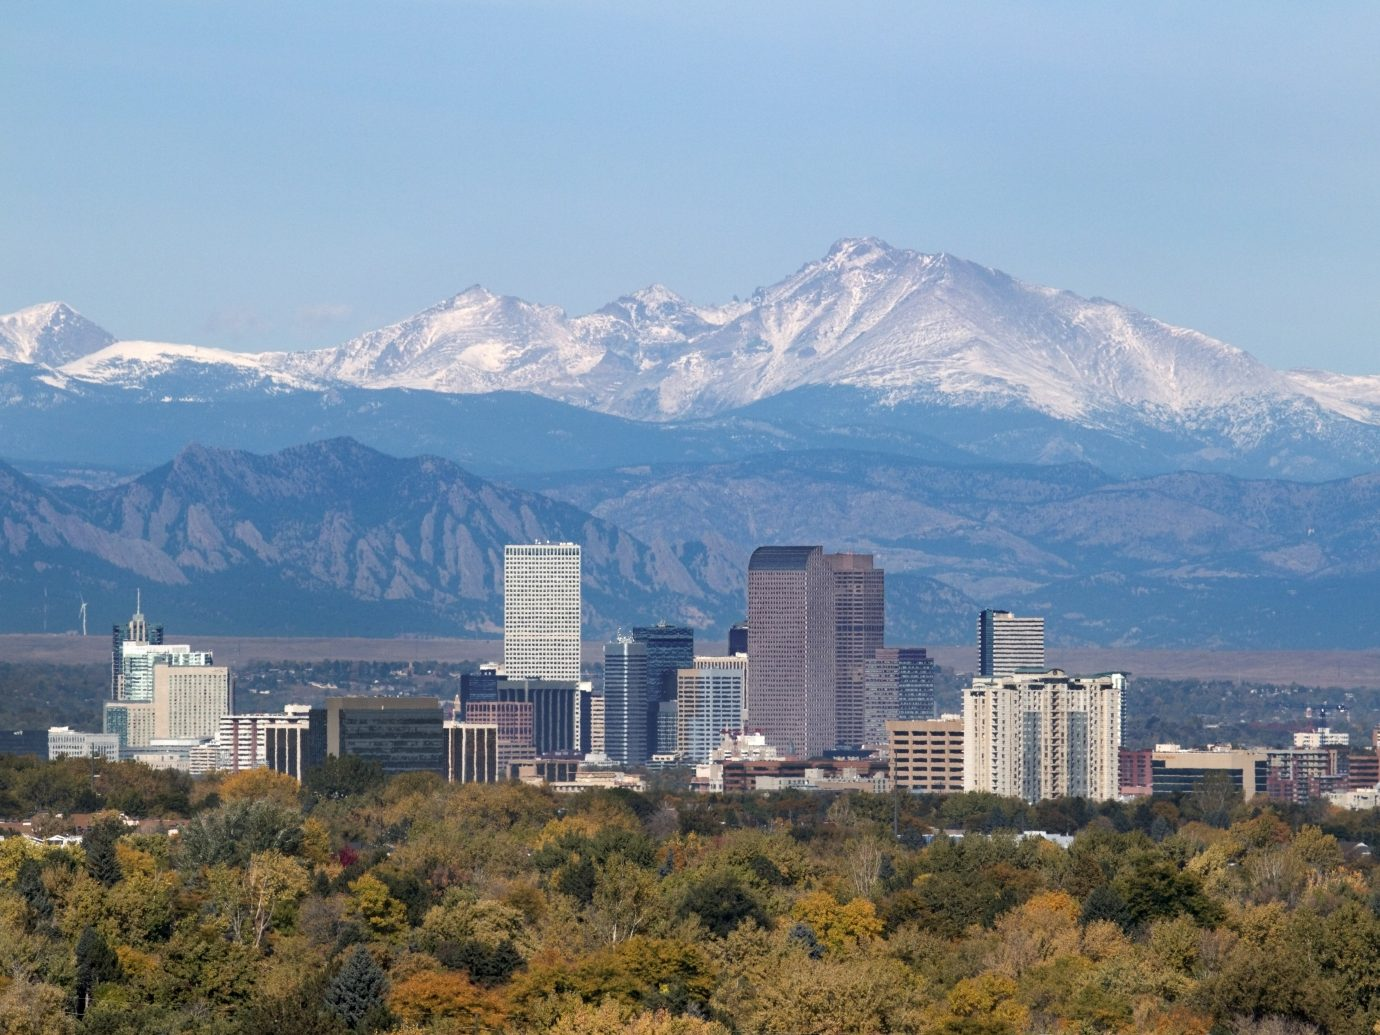 """With the snow covered Longs Peak part of the Rocky Mountains and the iconic flatirons of Boulder in the background, Downtown Denver skyscrapers including the iconic """"mailbox"""" or """"cash register"""" building as well as hotels, office buildings and apartment buildings fill the skyline."""